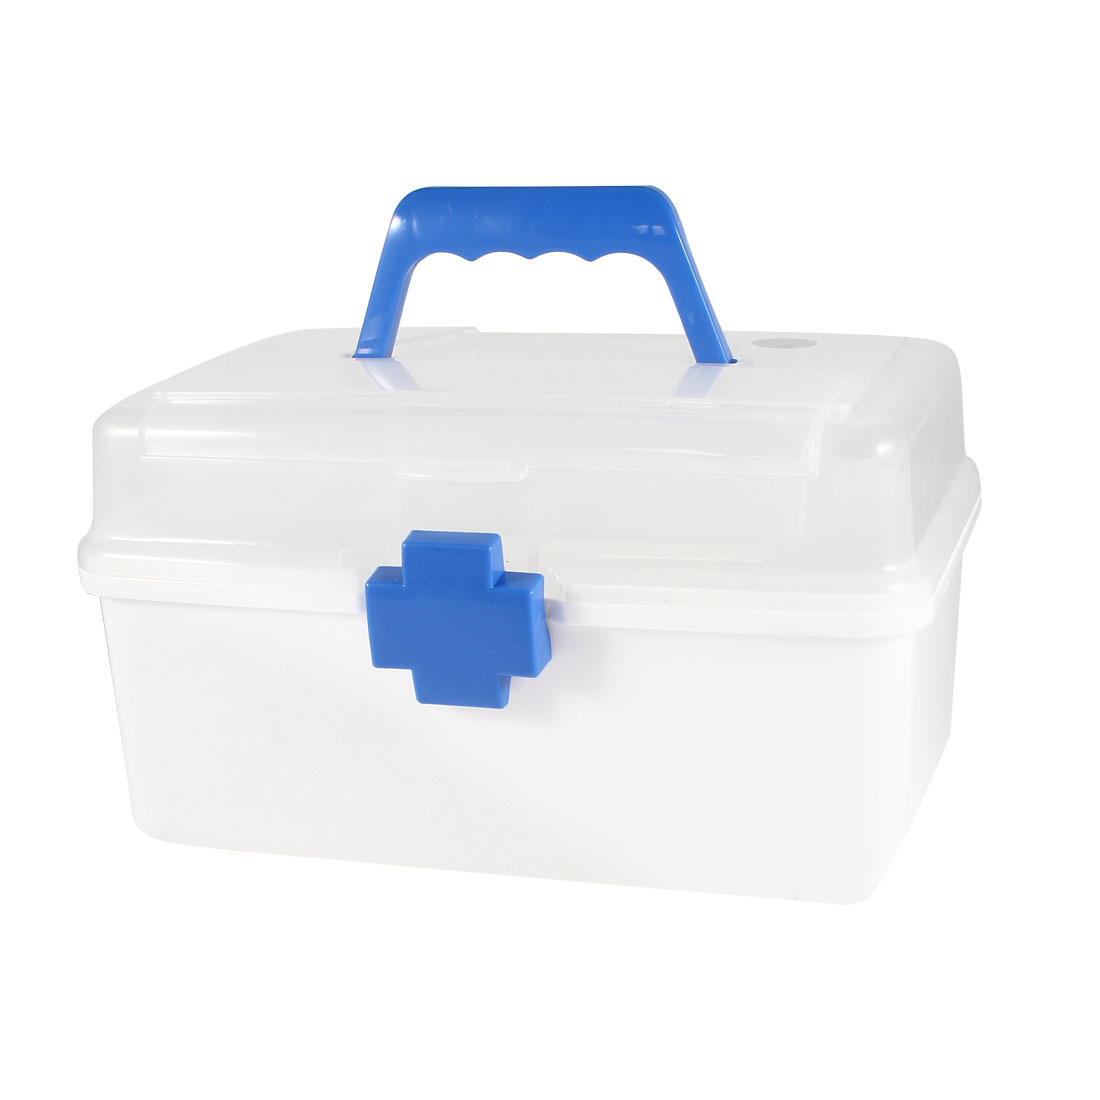 Superieur Blue Button Plastic First Aid Kits Health Care Medicine Holder Box Storage  Case